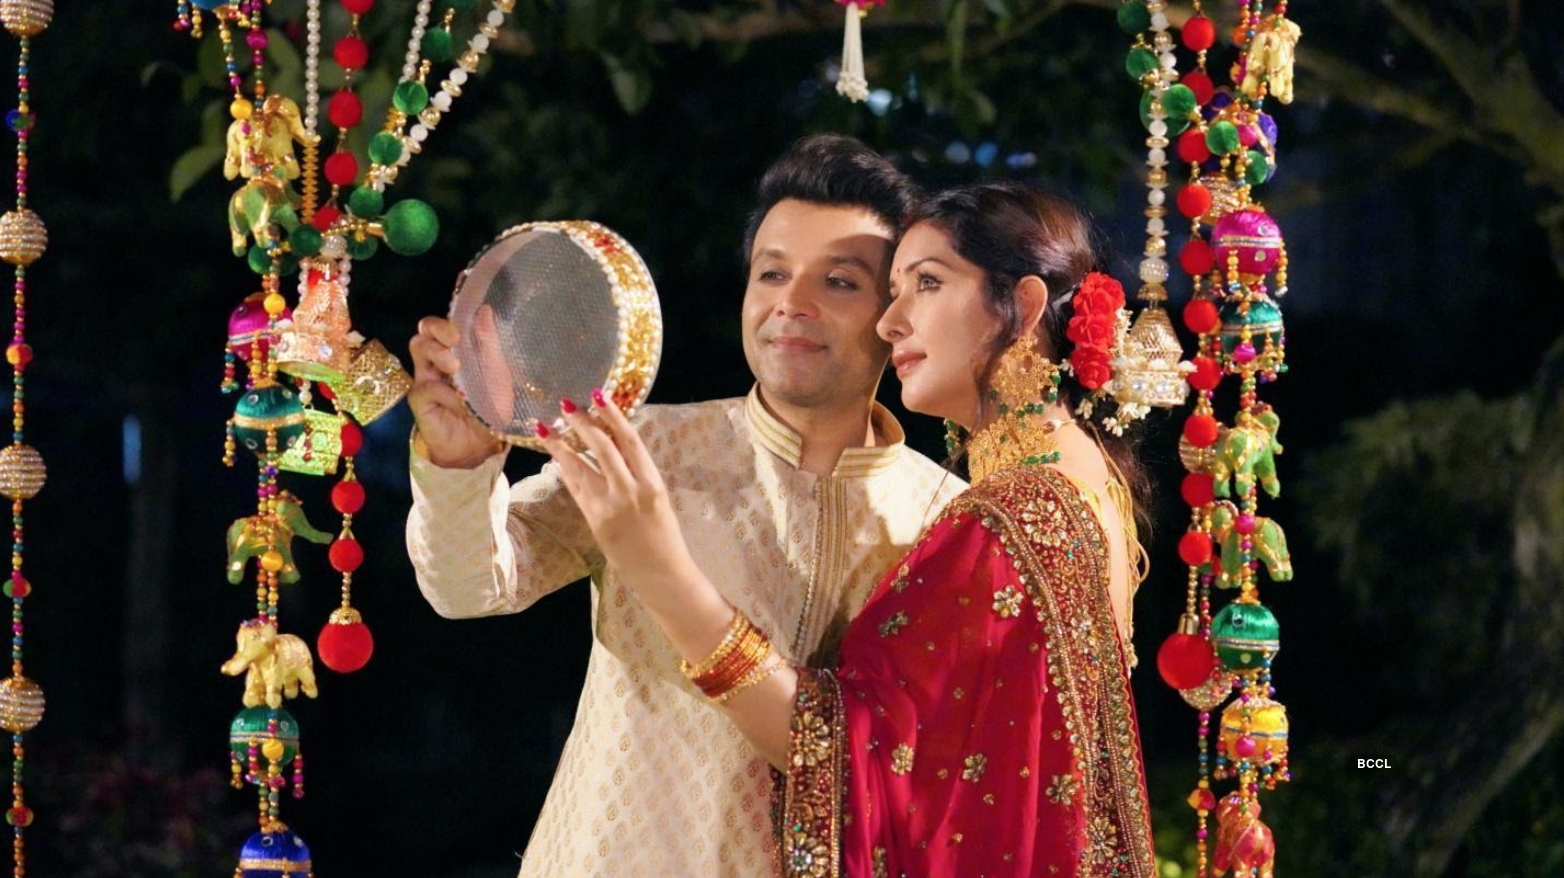 Why Sameksha and Shael Oswal's Karvachauth images have gone viral